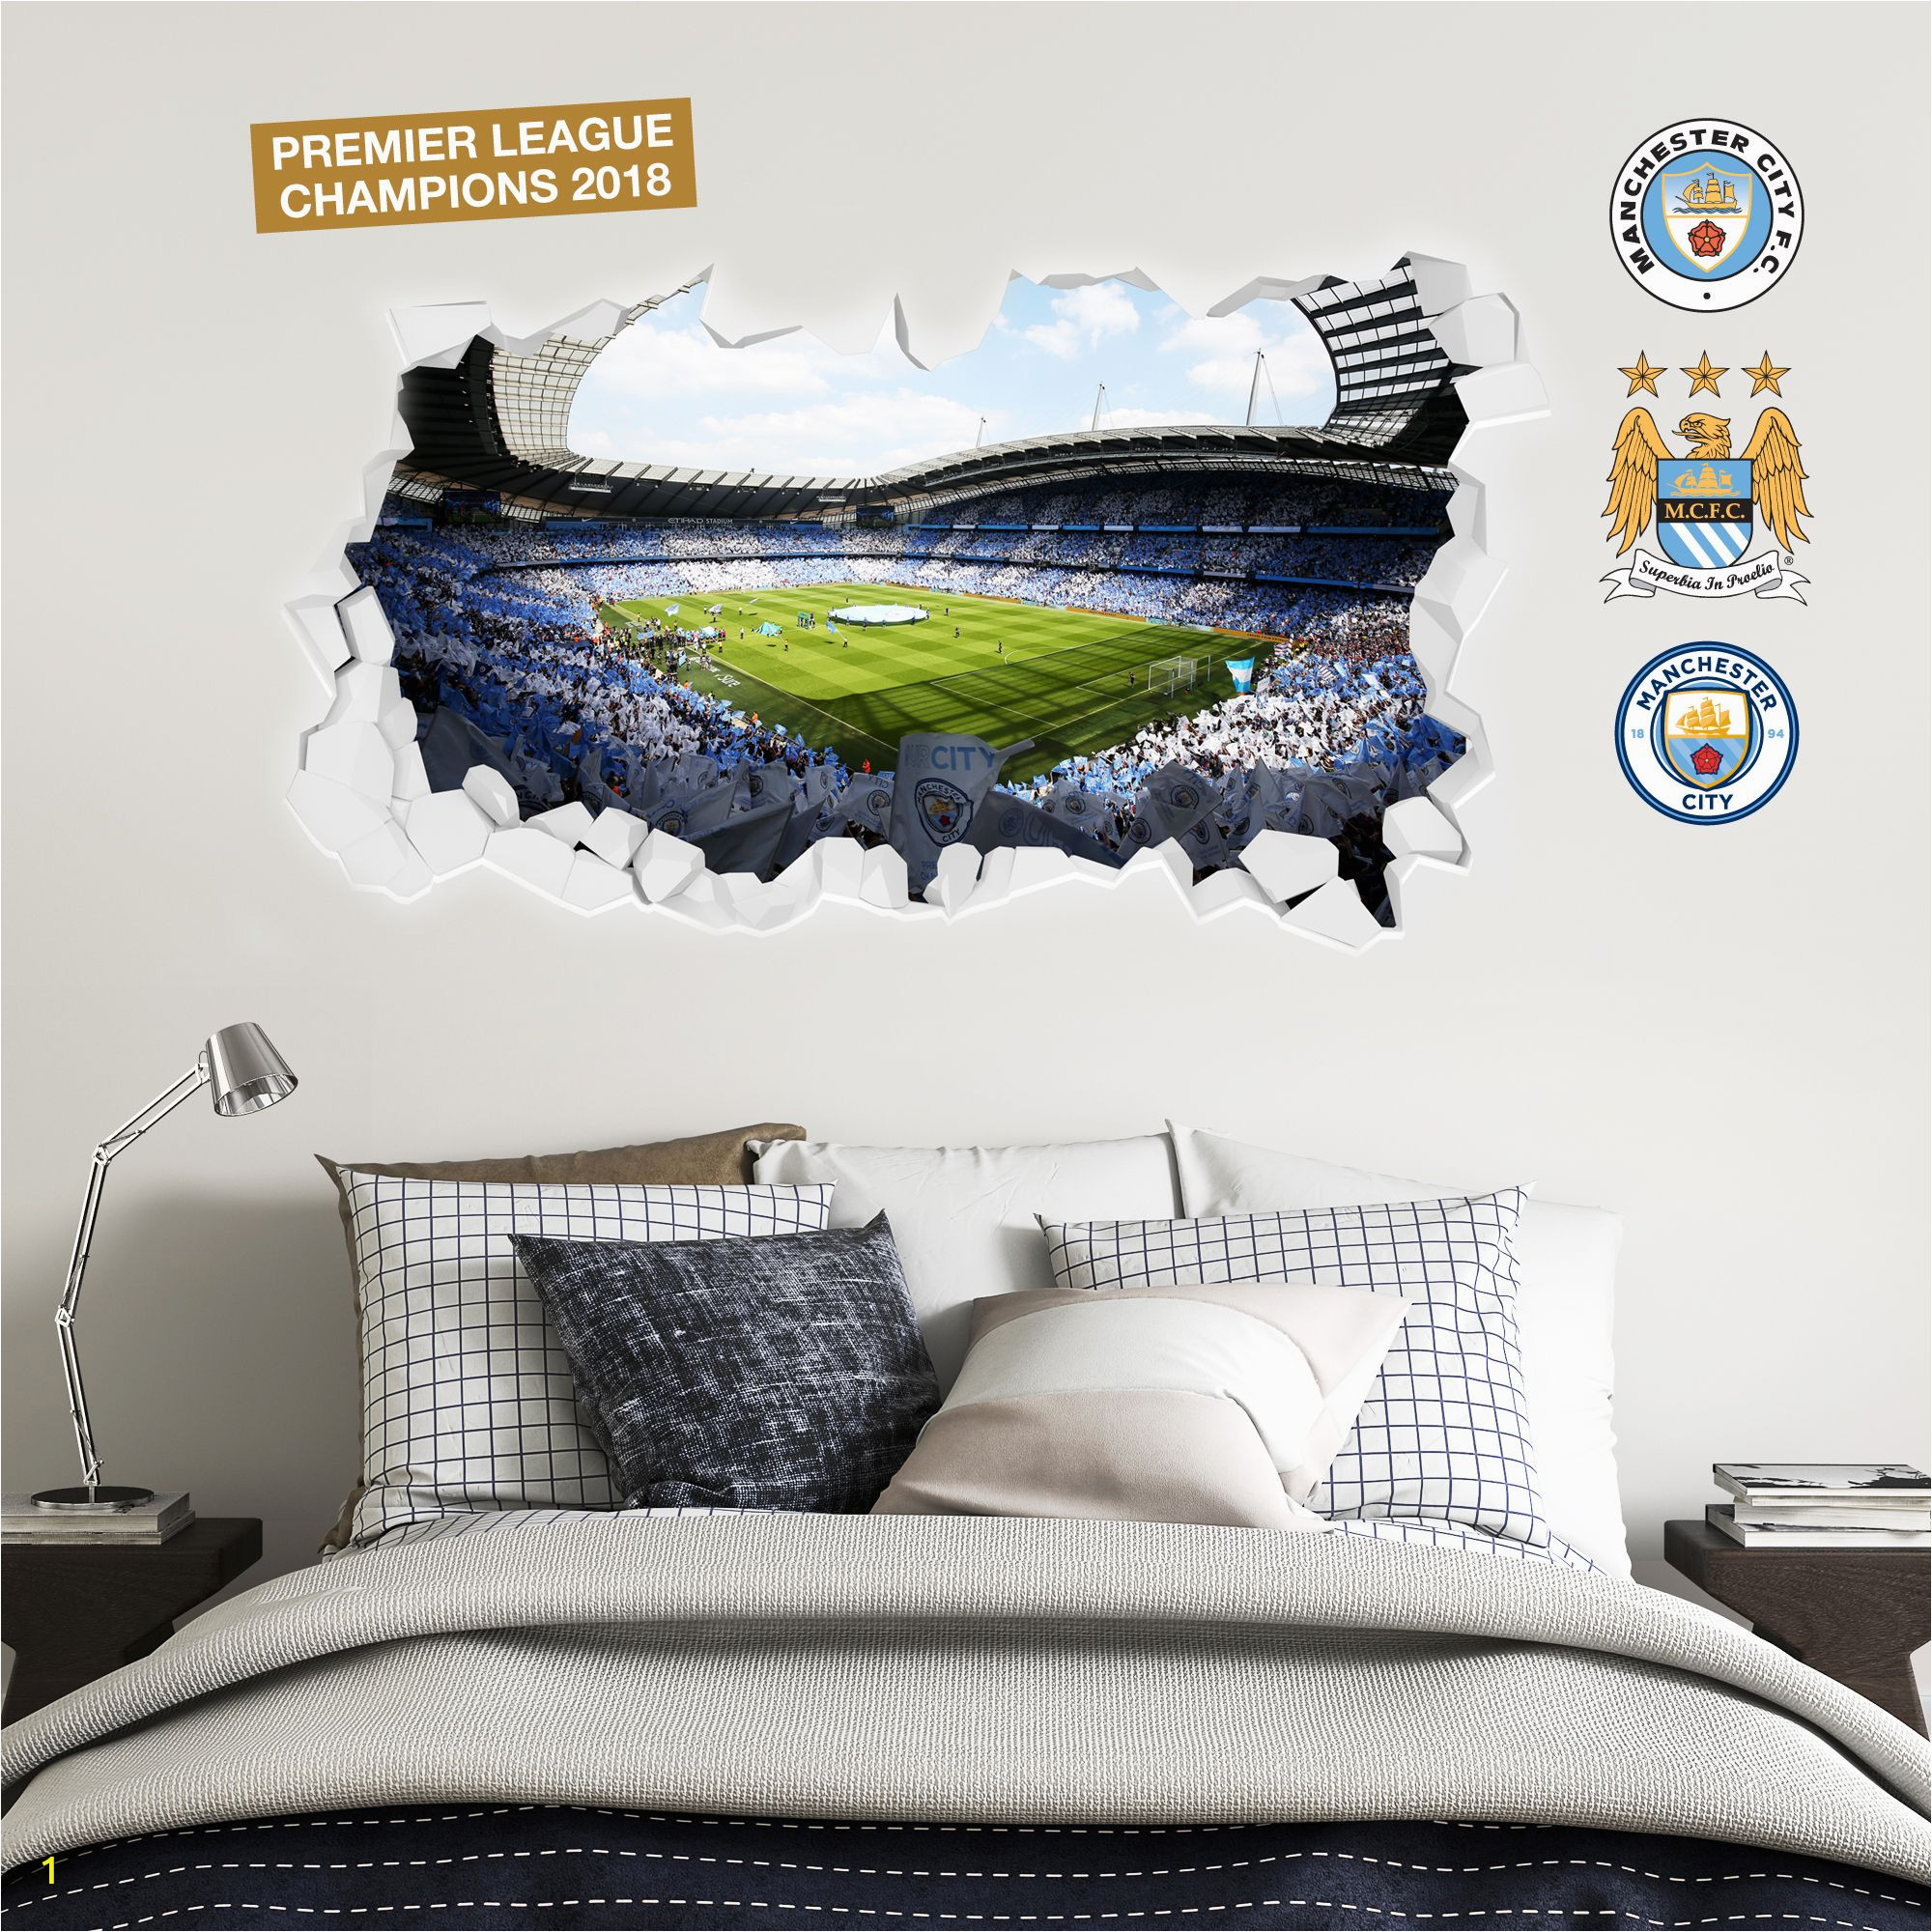 Man City Wall Mural Pin On Manchester City F C Wall Stickers